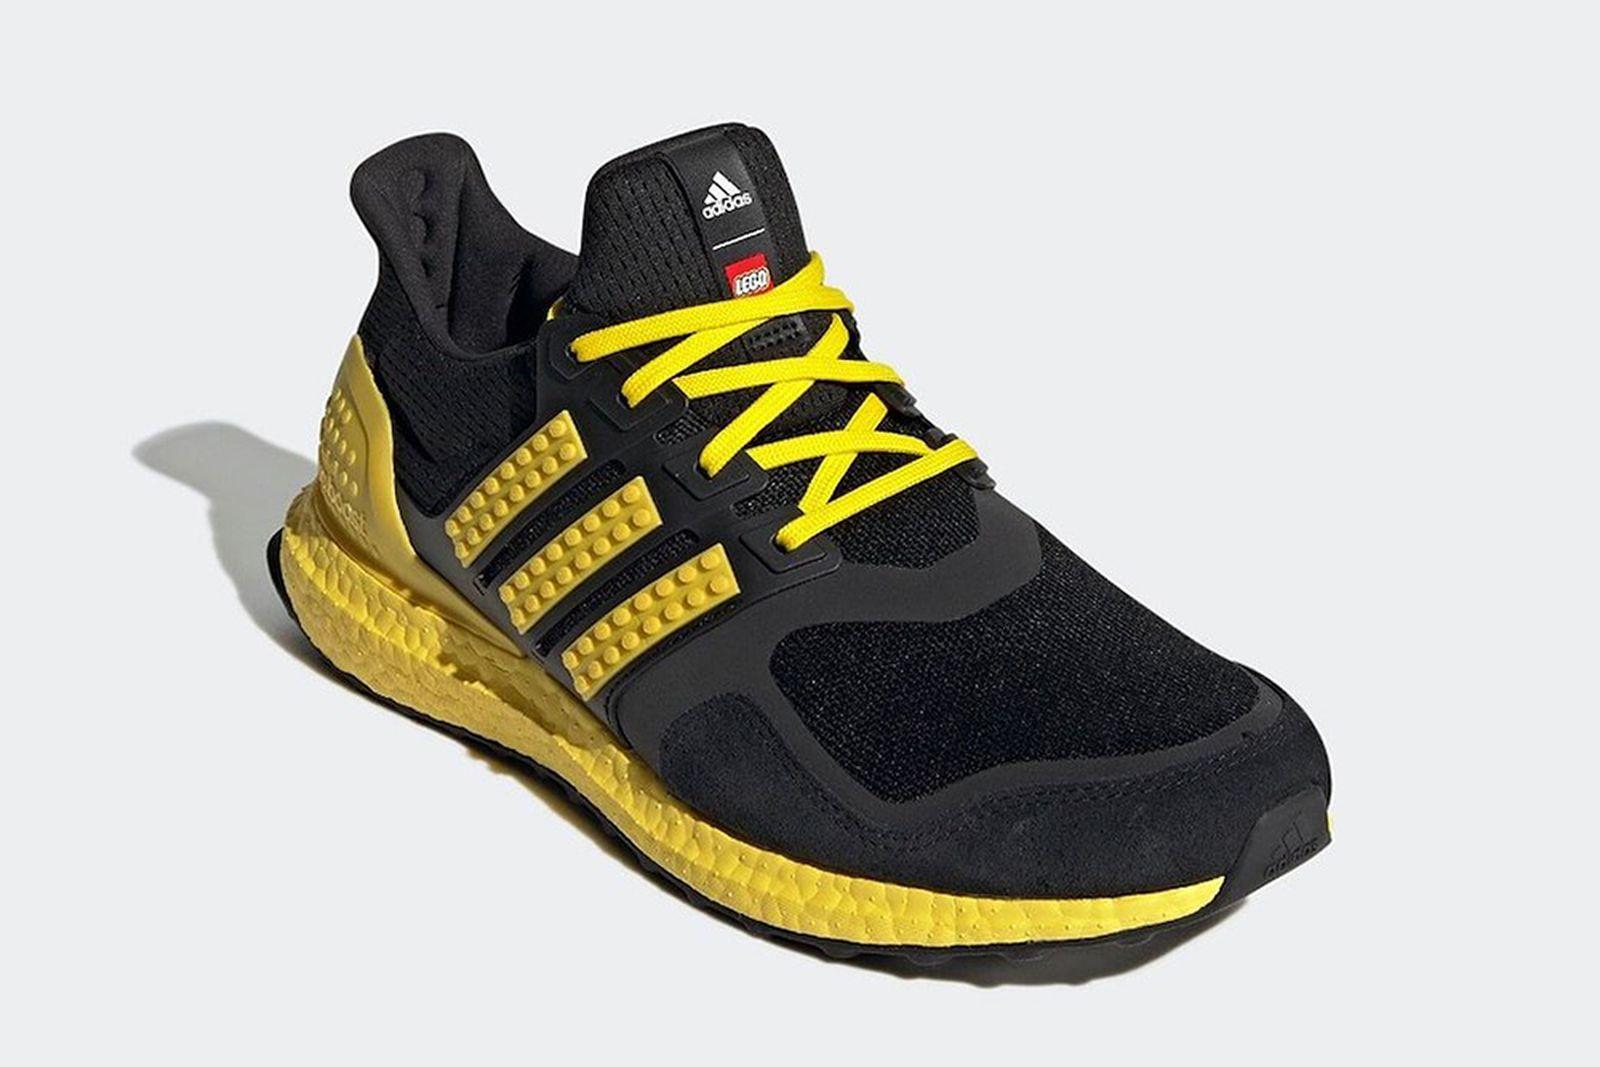 lego-adidas-ultraboost-color-pack-release-date-price-02